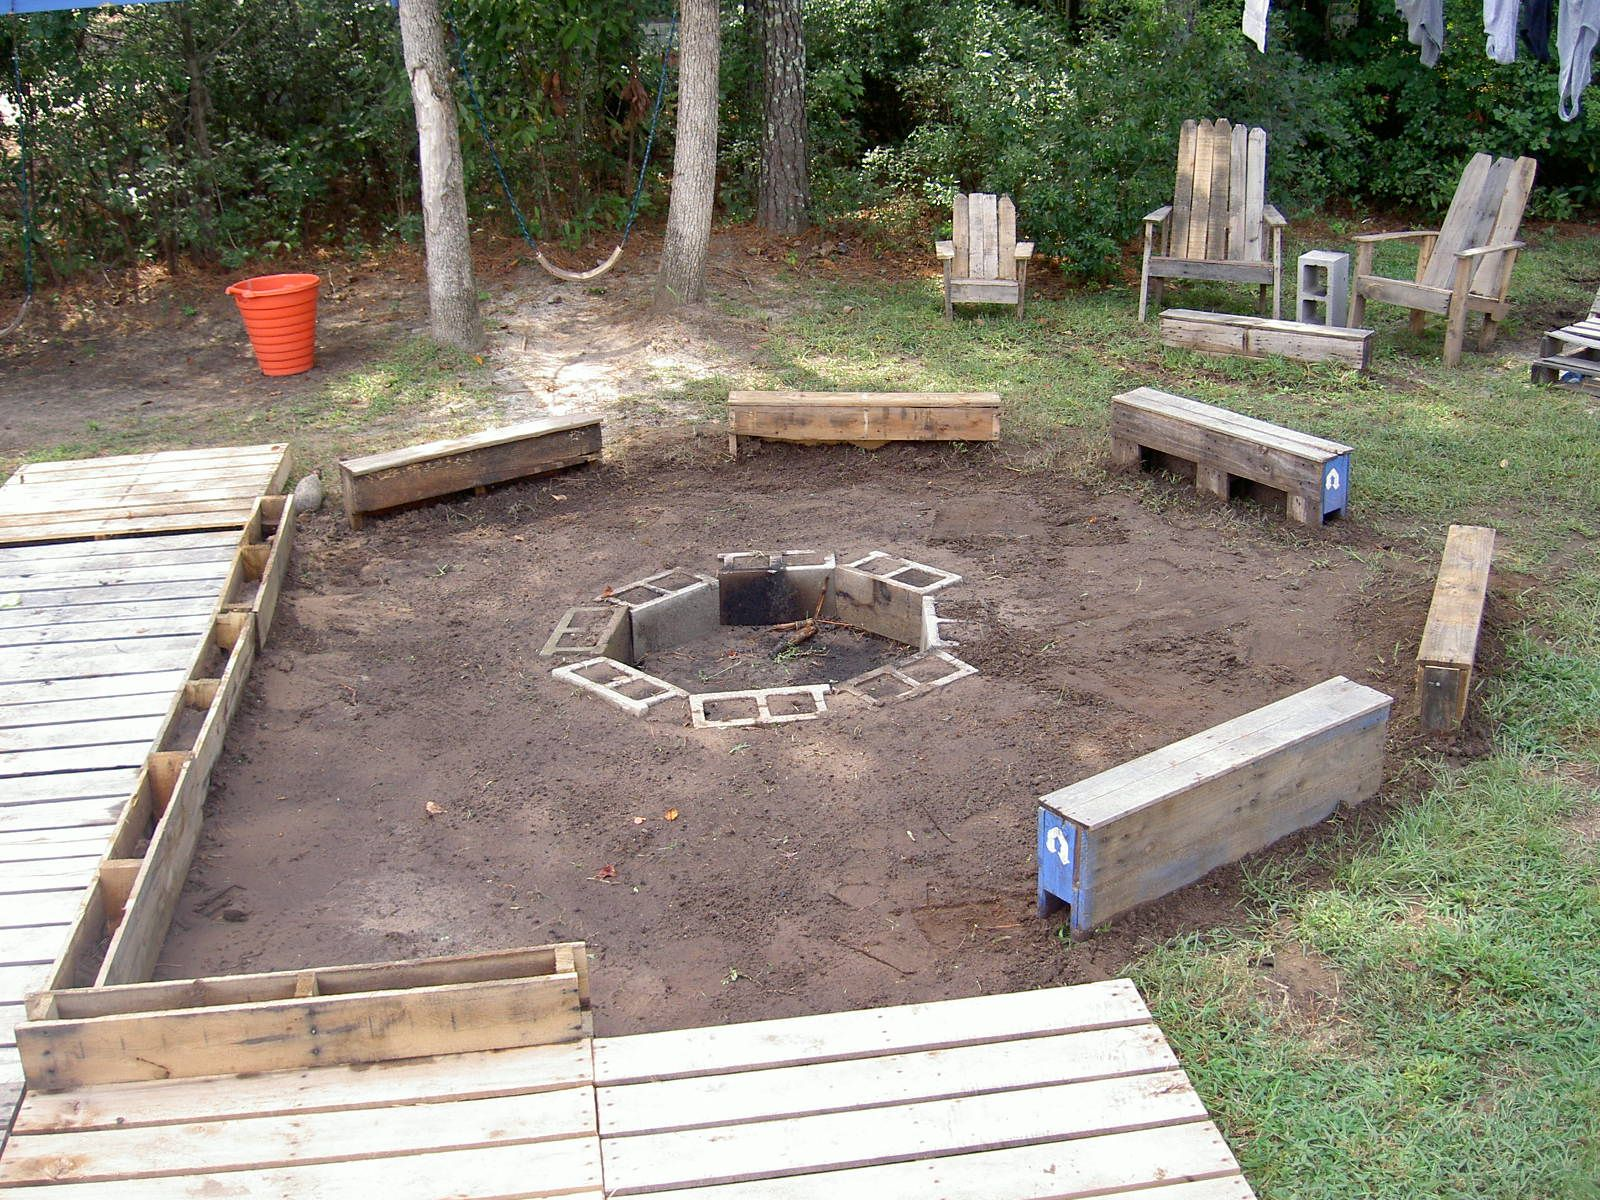 Fire Pit Deck And Seats Adirondack Chairs